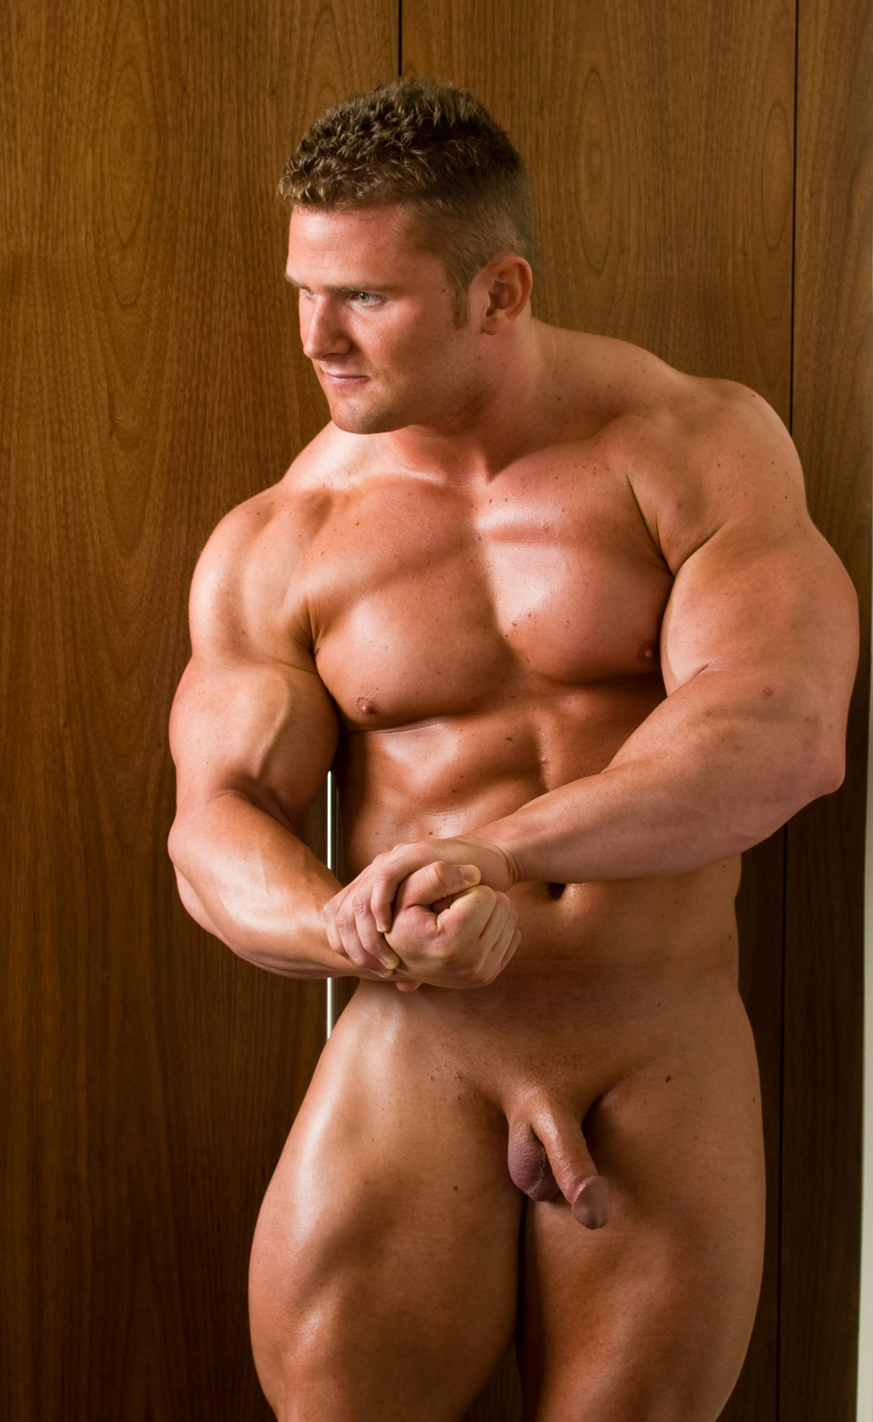 Muscle men sex Gay bodybuilders